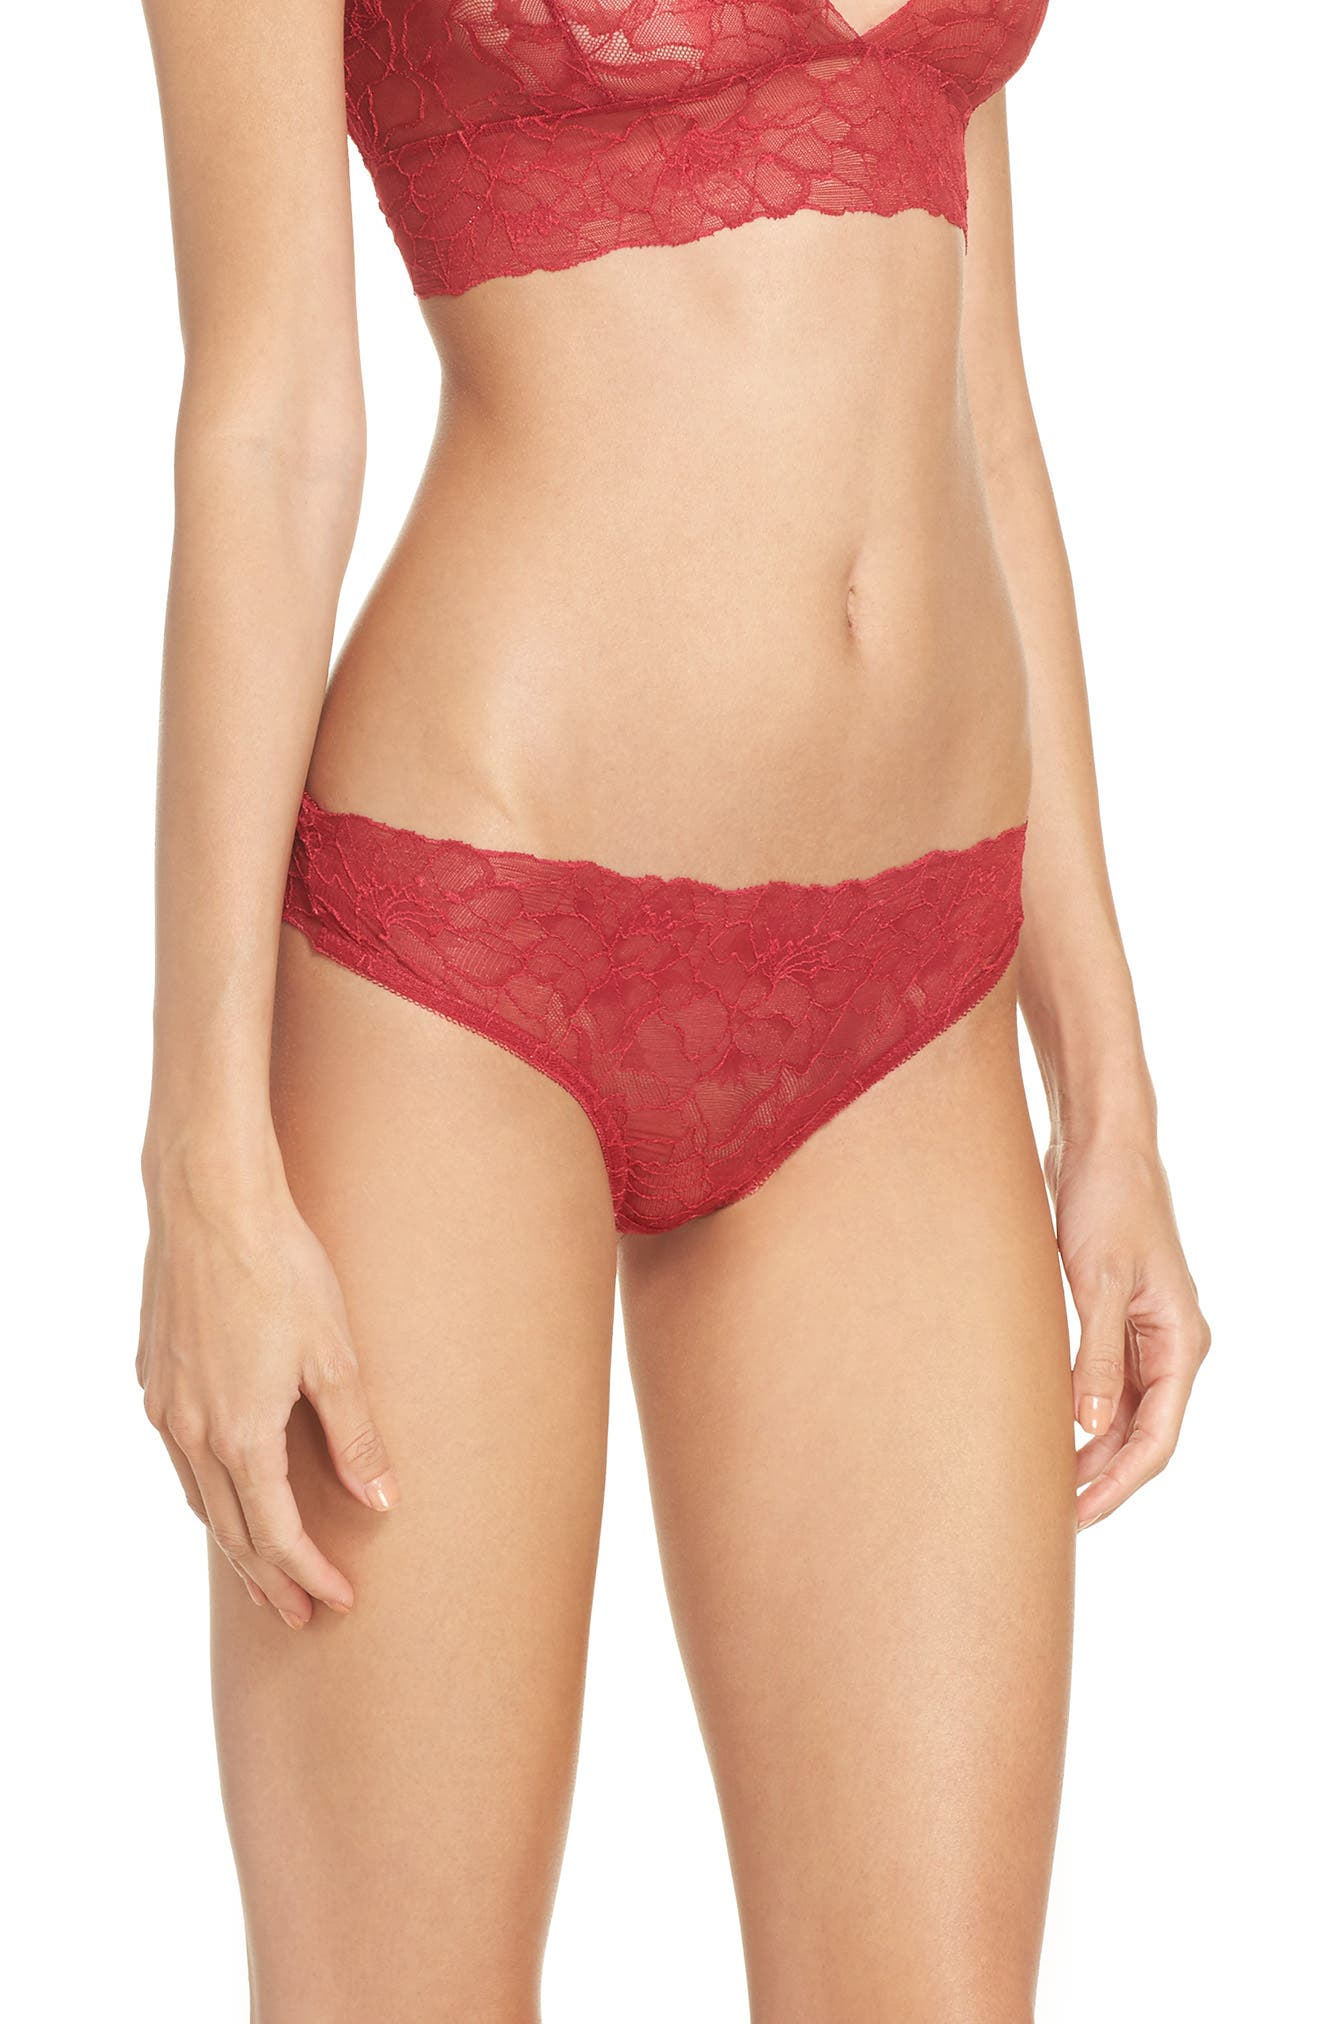 All Lace Glamour Lace Thong,                             Alternate thumbnail 3, color,                             Scarlet